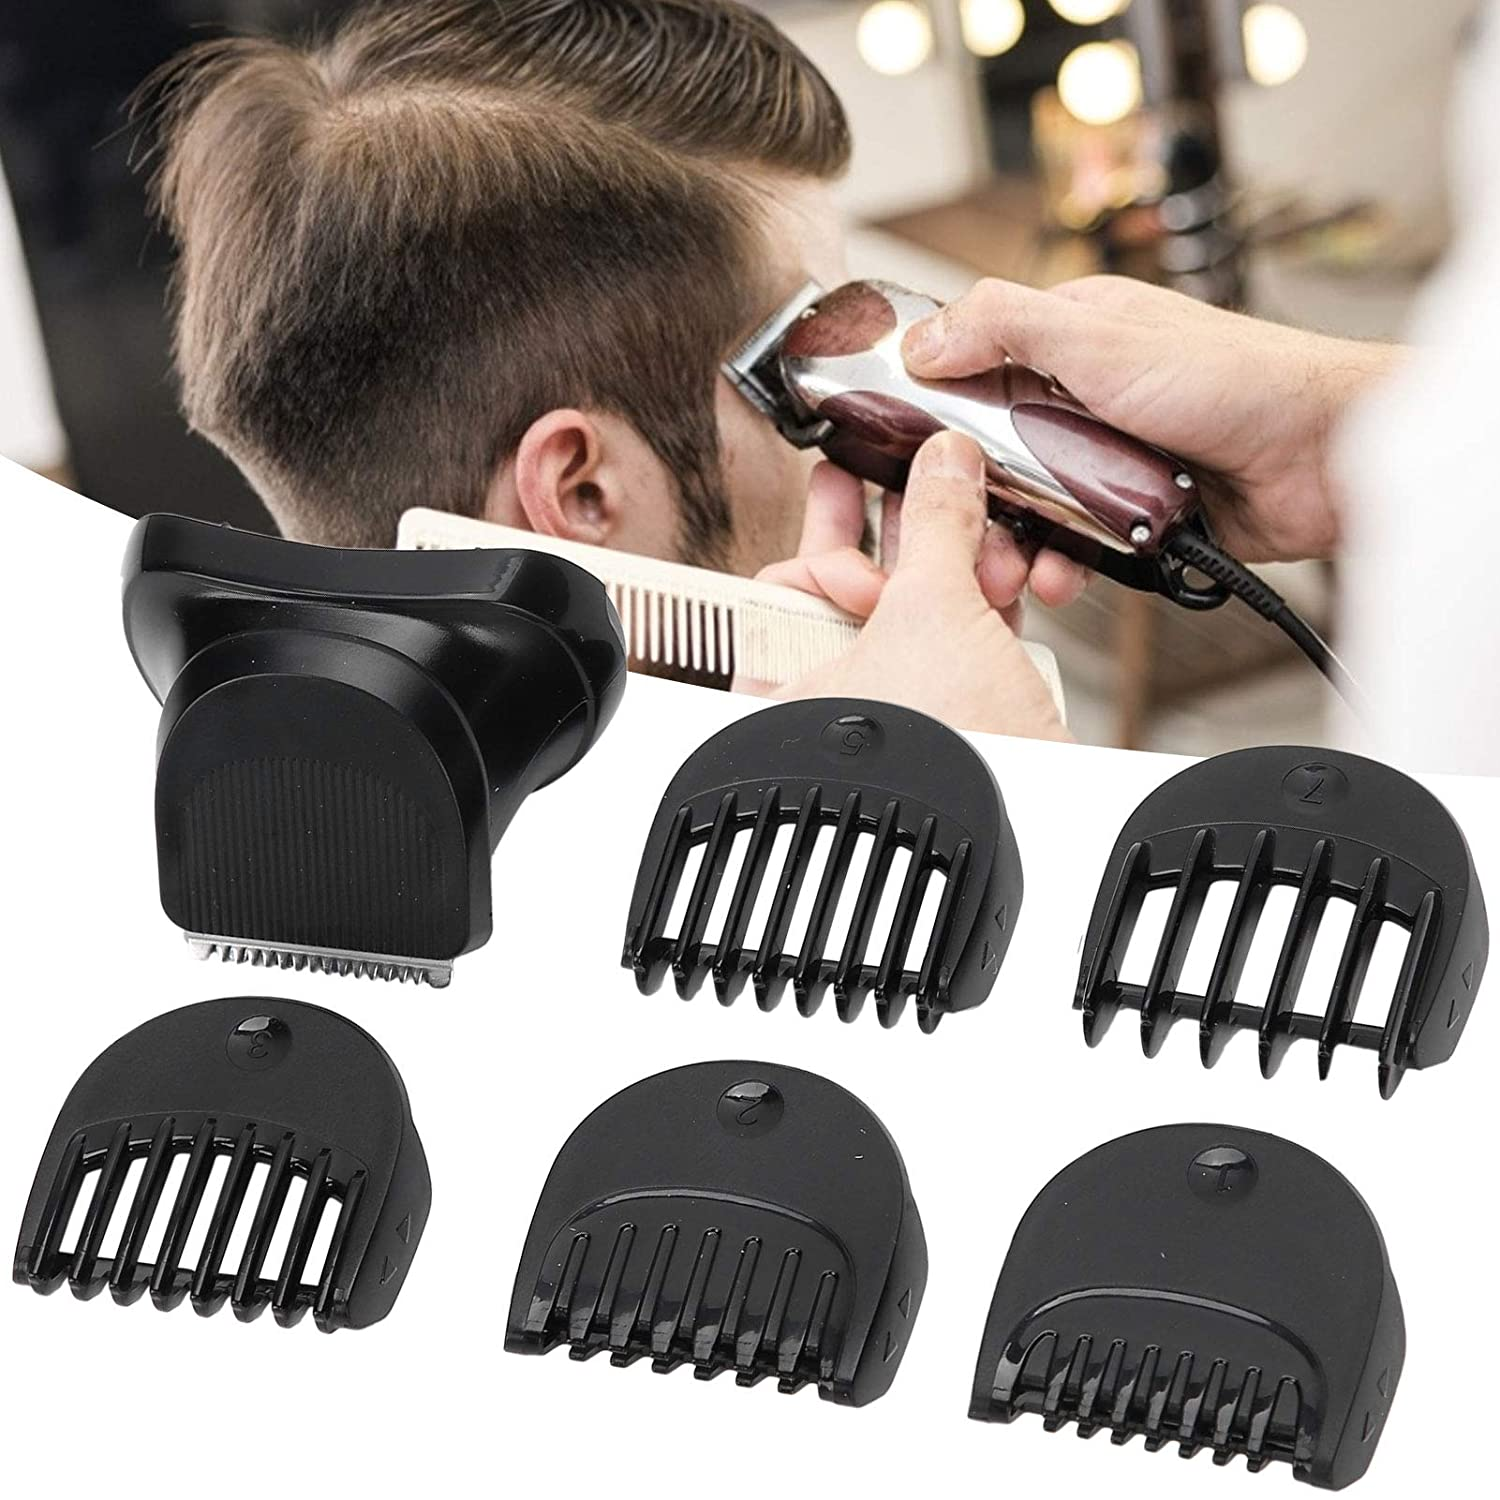 Genuine Shaver low-pricing Head Long‑lasting Practical ABS Material Cost‑